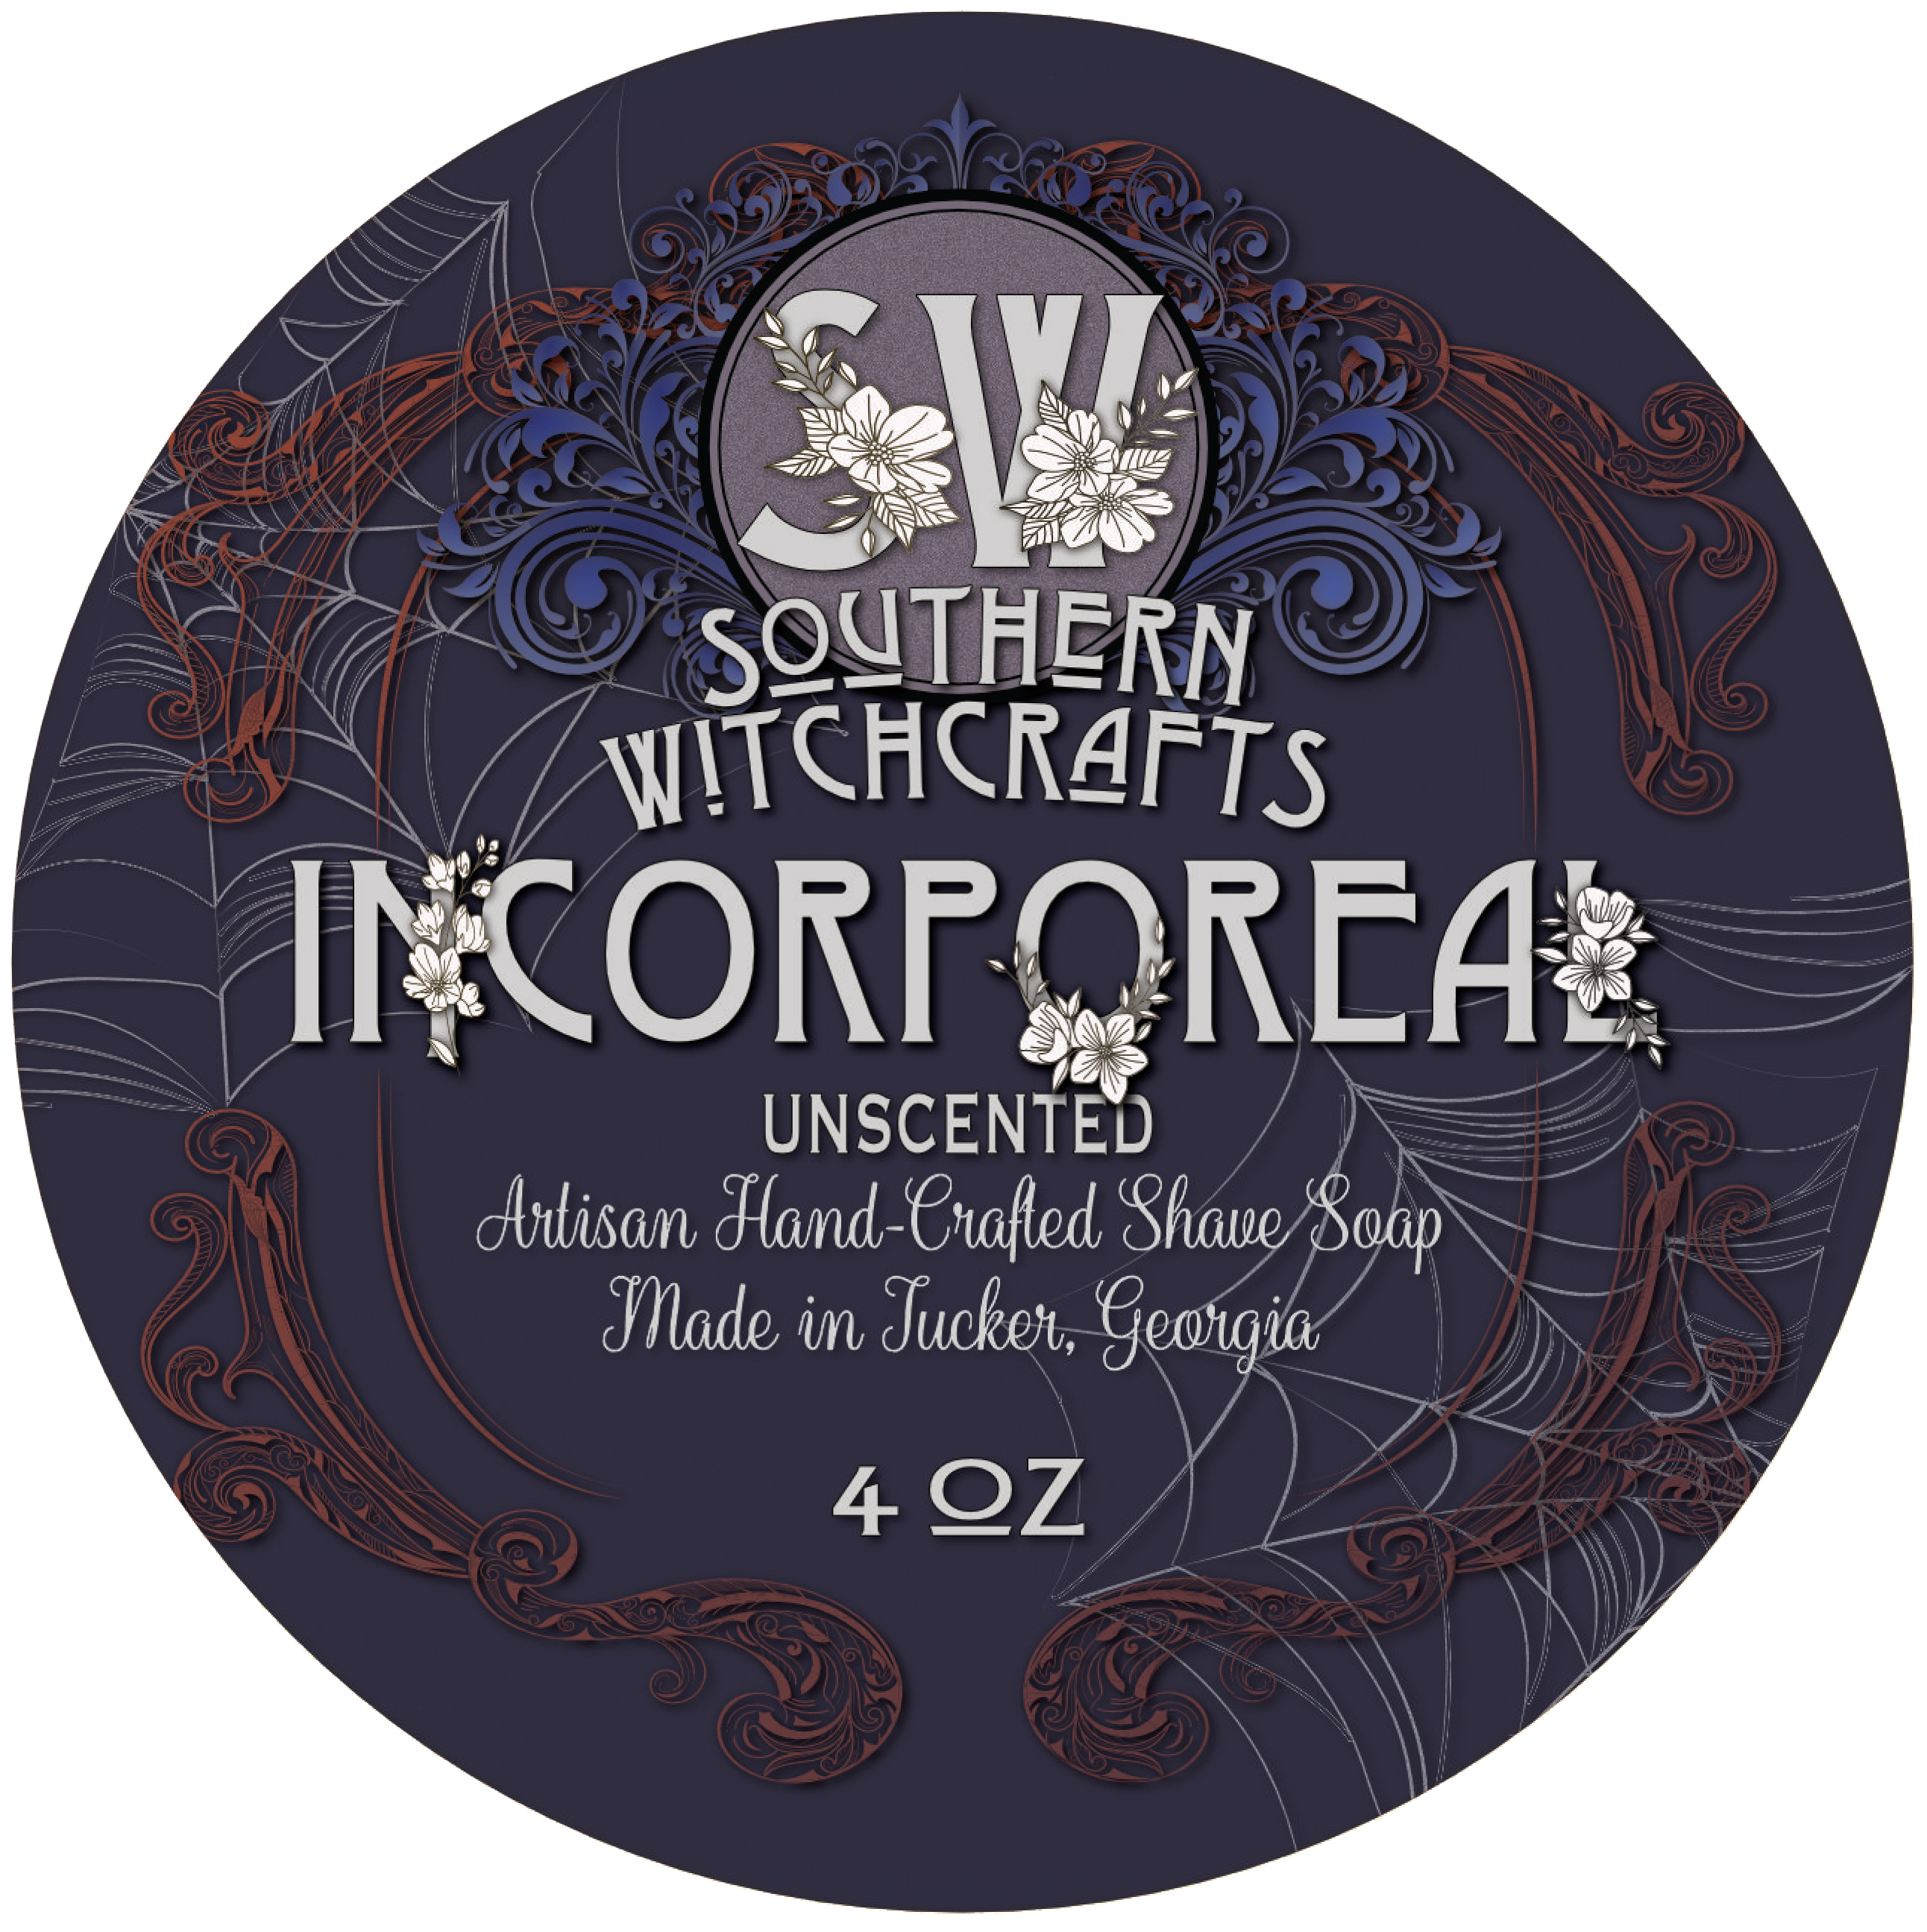 Southern Witchcrafts - Incorporeal - Soap image